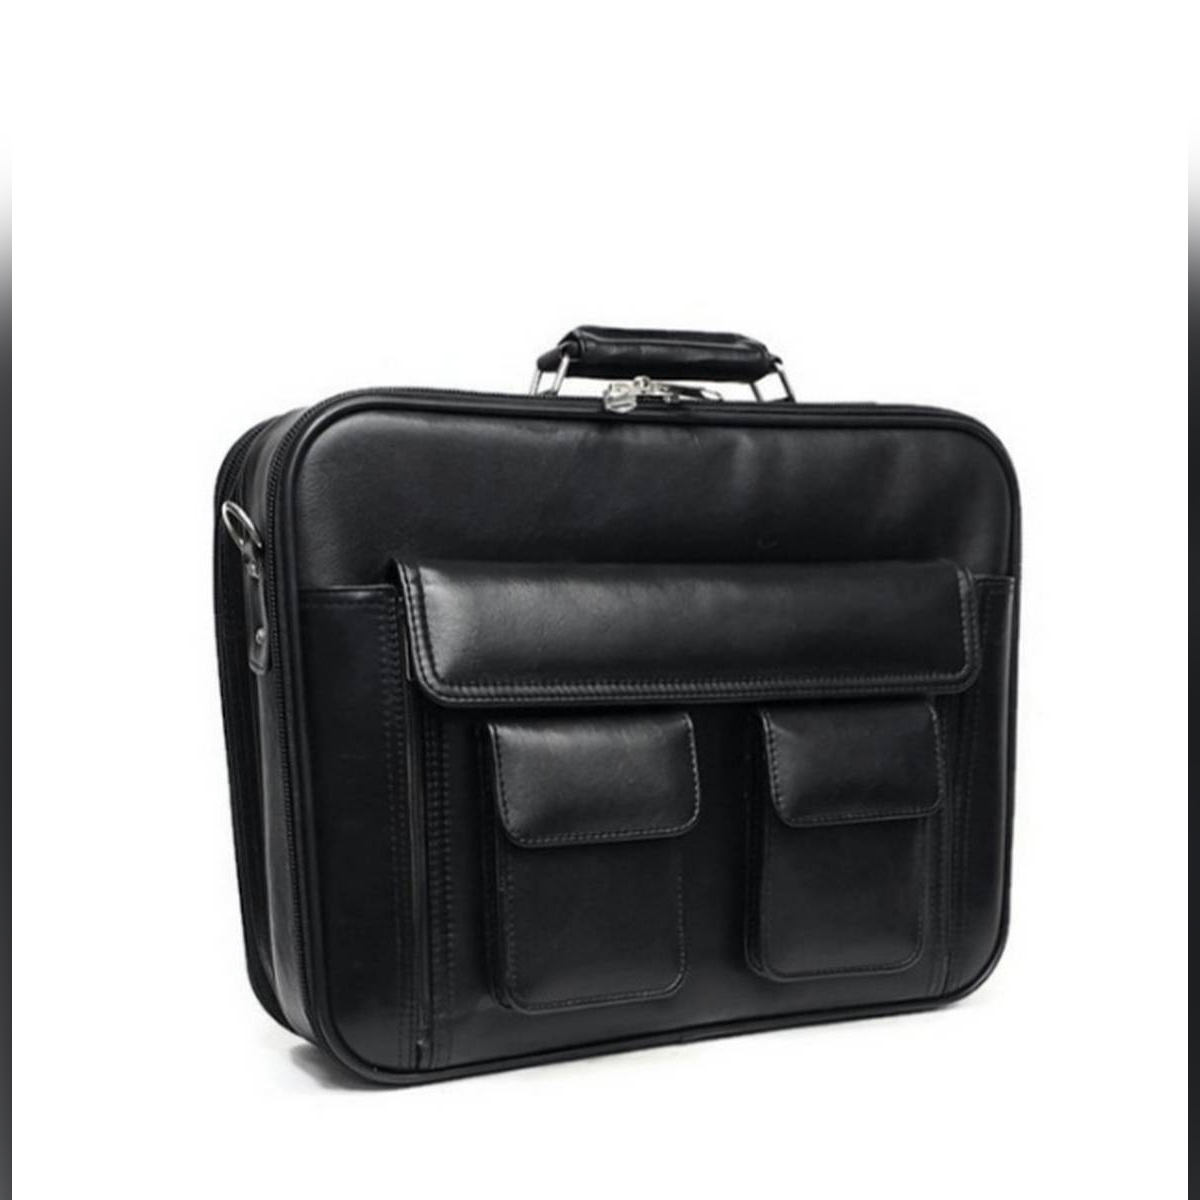 Stylish leather briefcase bags for men Business Bag Laptop and File Bag Office Tour